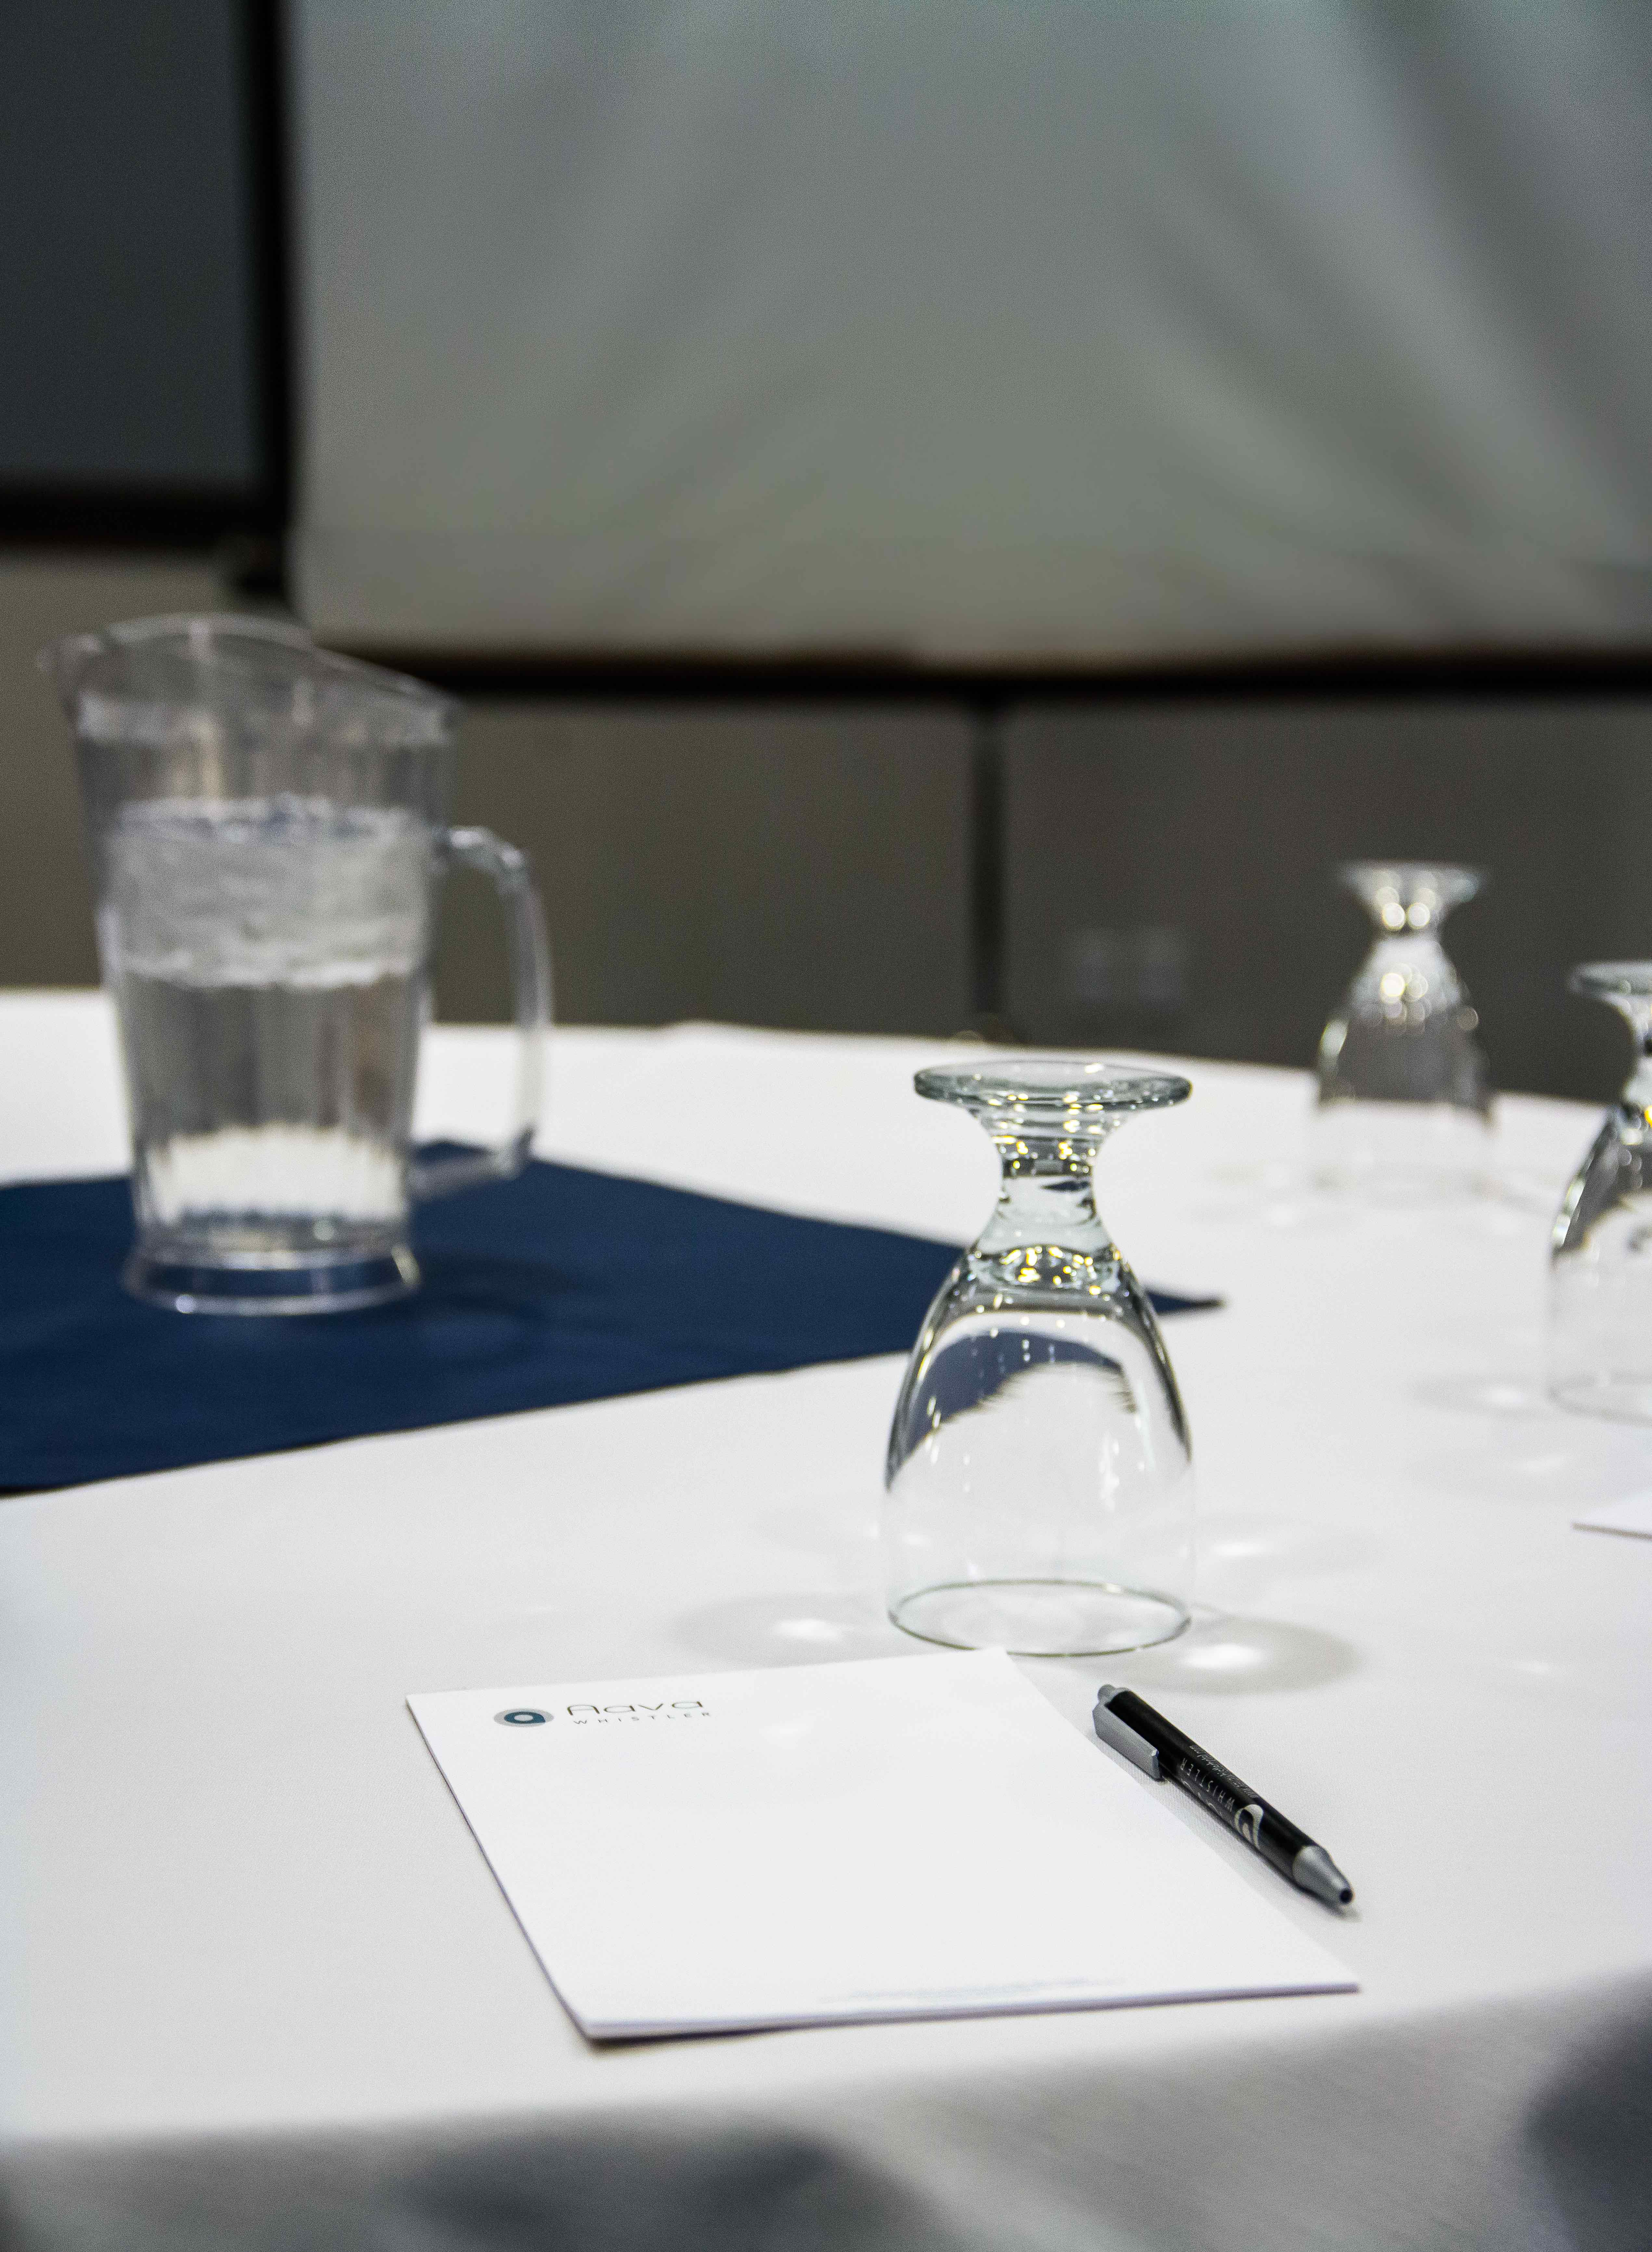 interior photo conference room pen and paper pad on the table jug of water glass decorated portrait